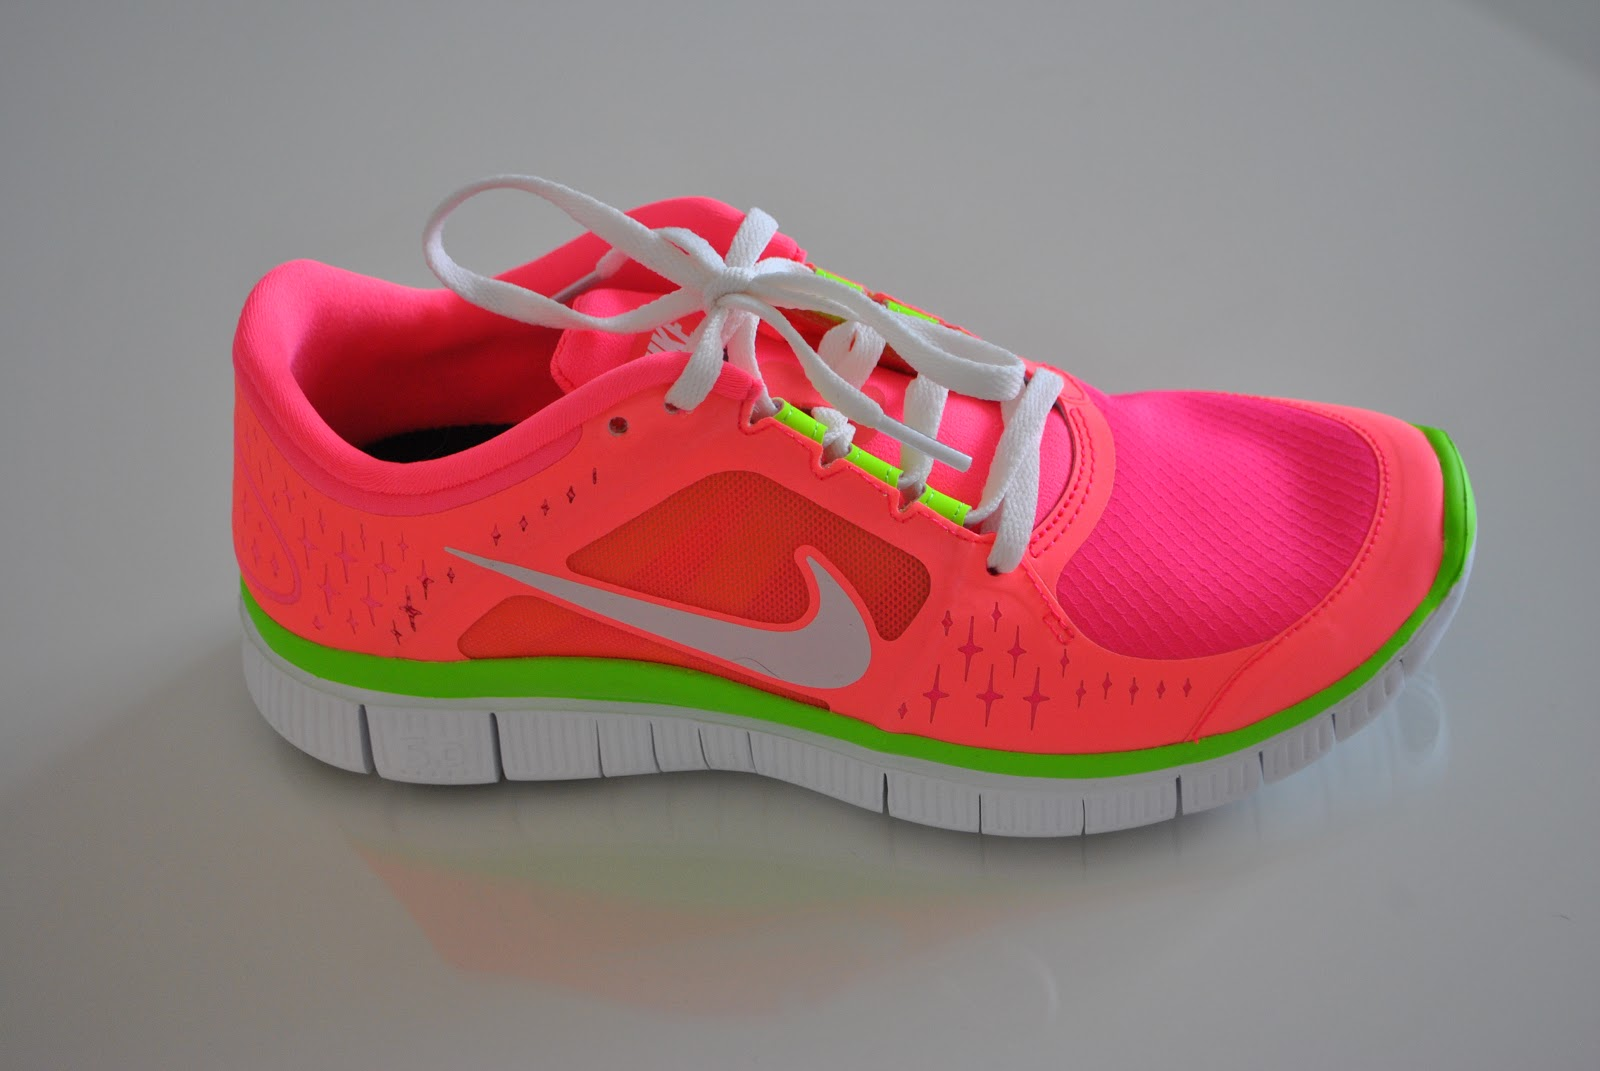 competitive price hot product professional sale passion for fashion: new in: NIKE iD Free Run!